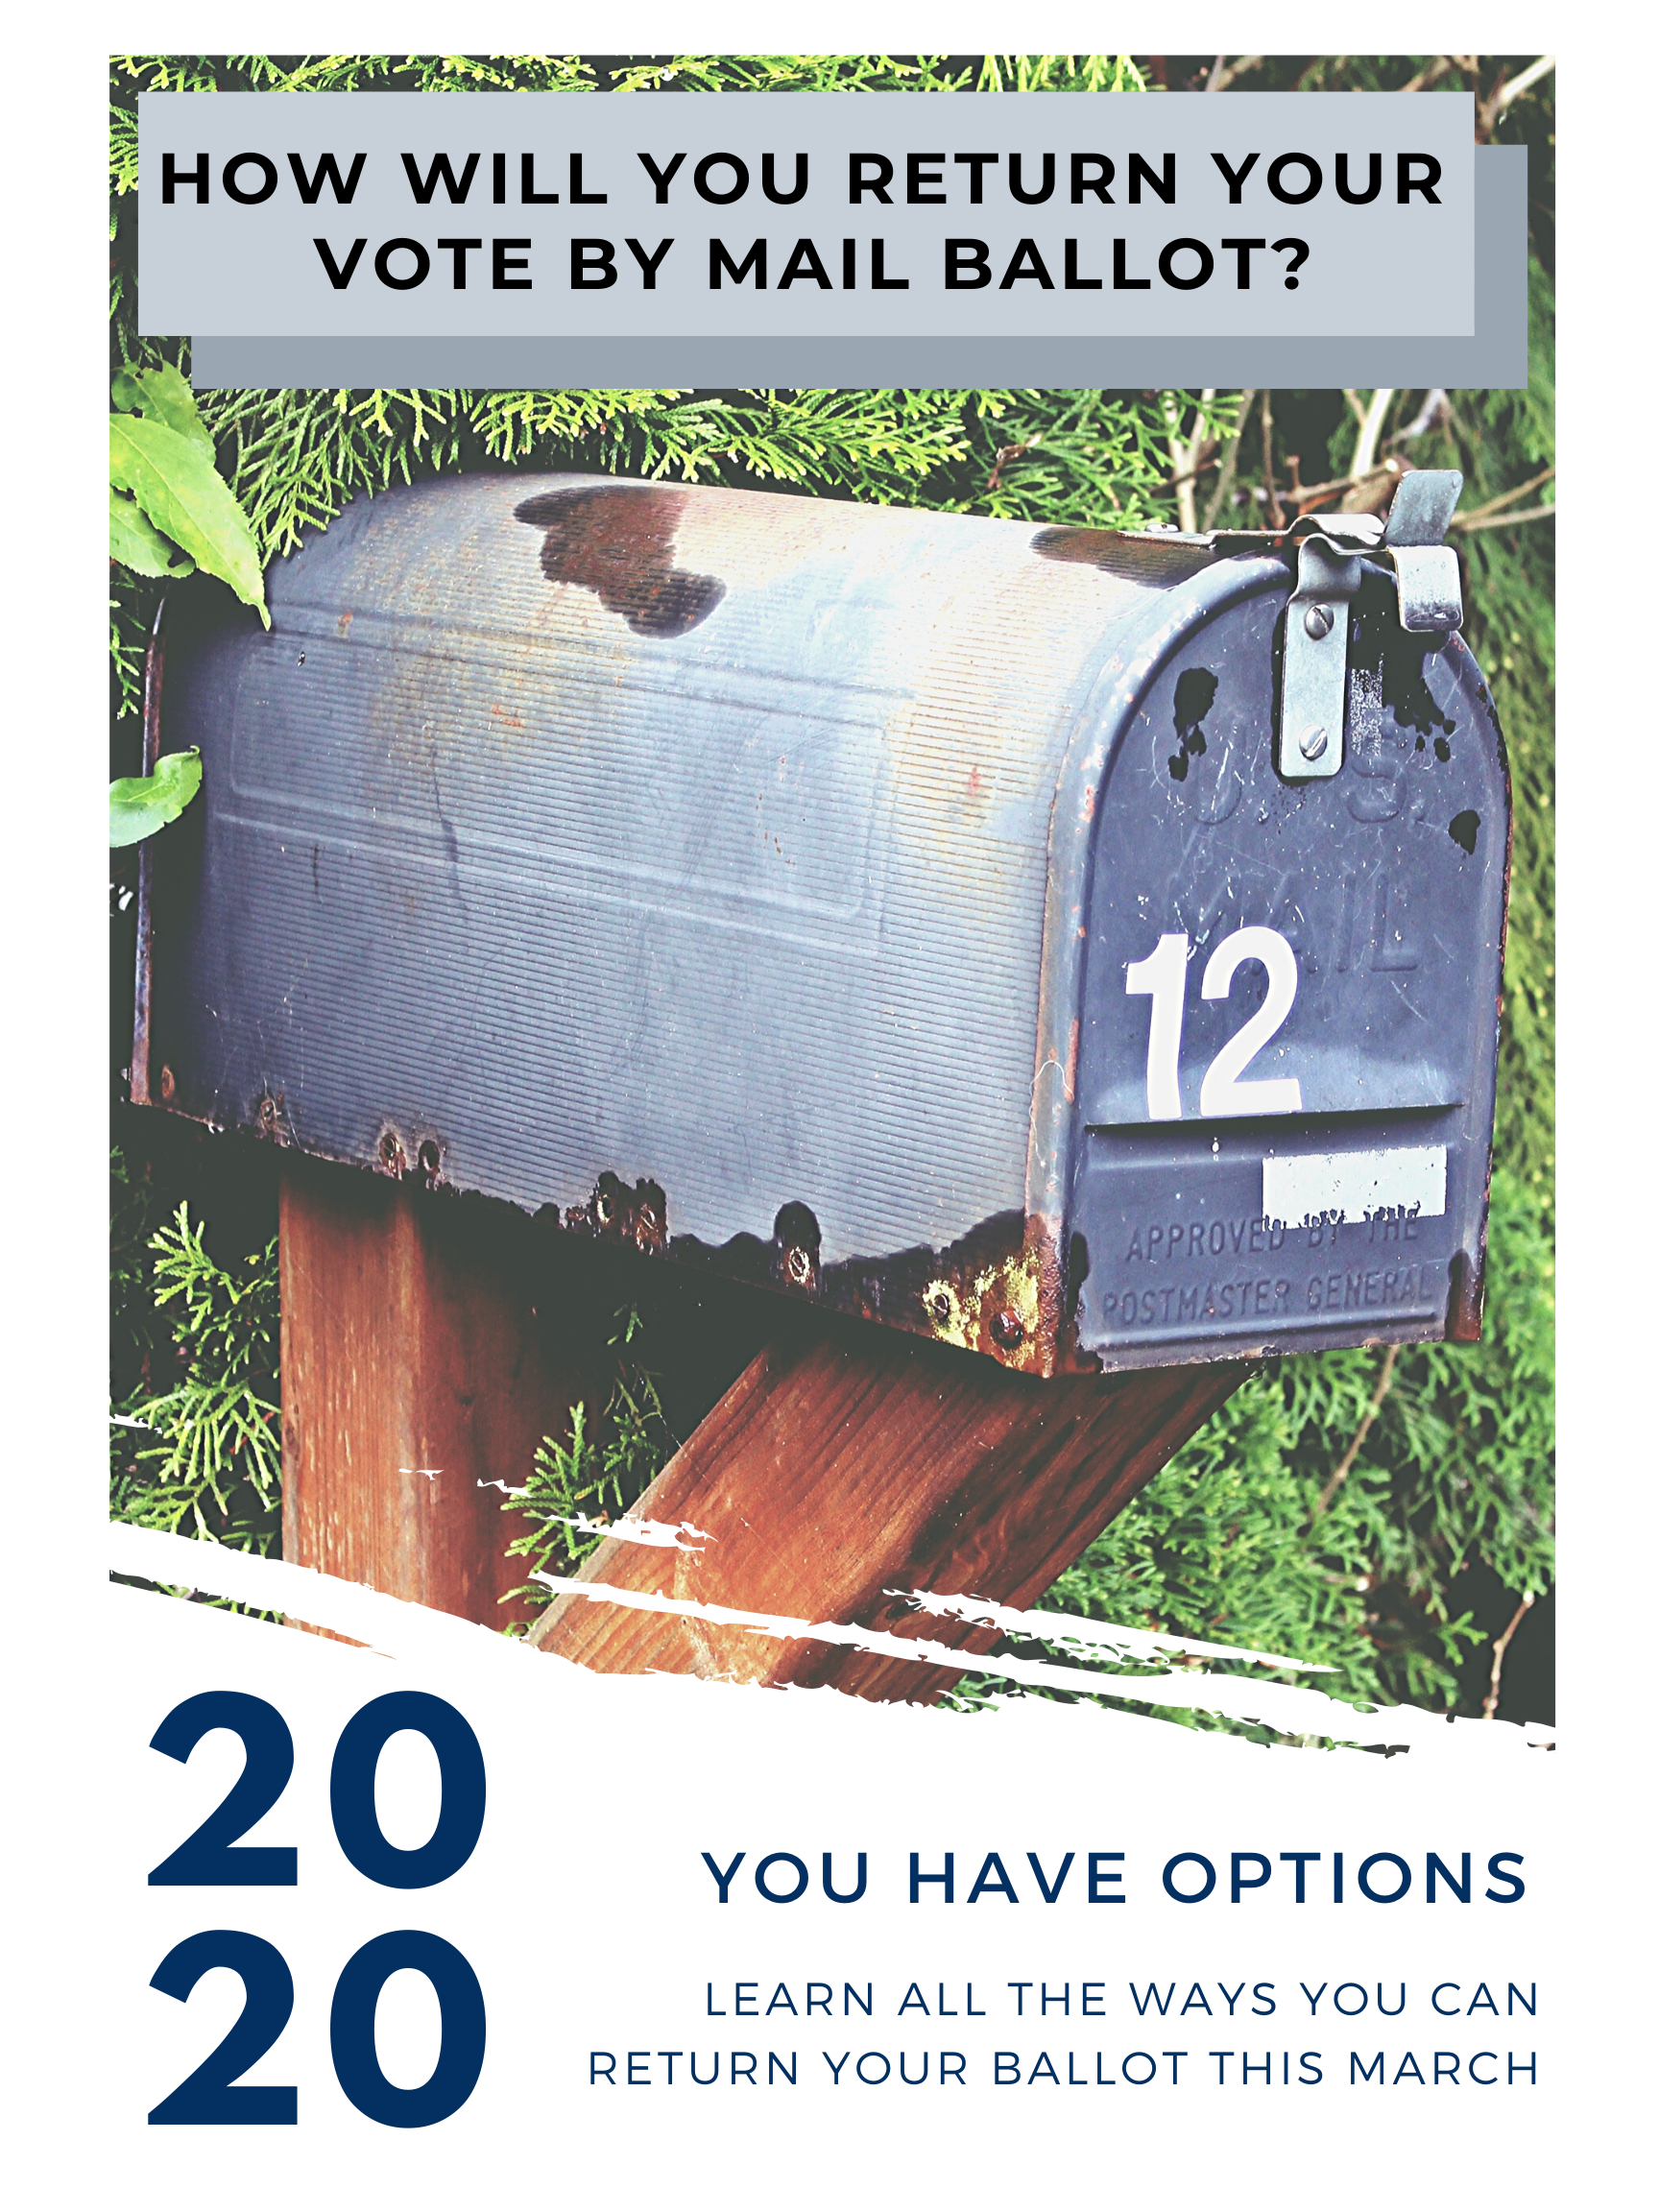 How will you retunr your vote by mail ballot in March? Learn about your options.